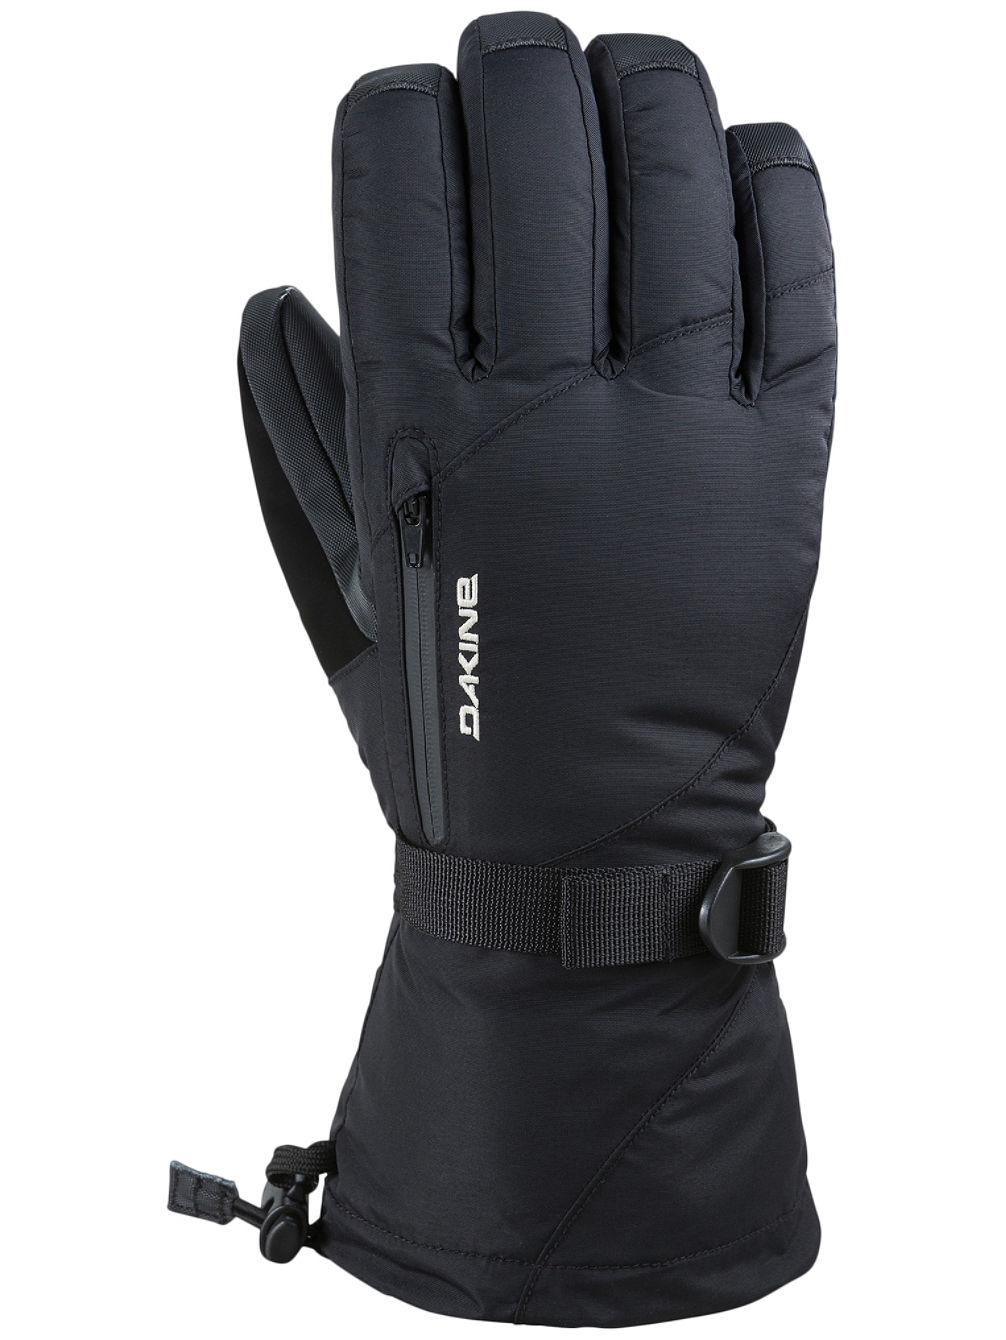 Sequoia Gloves